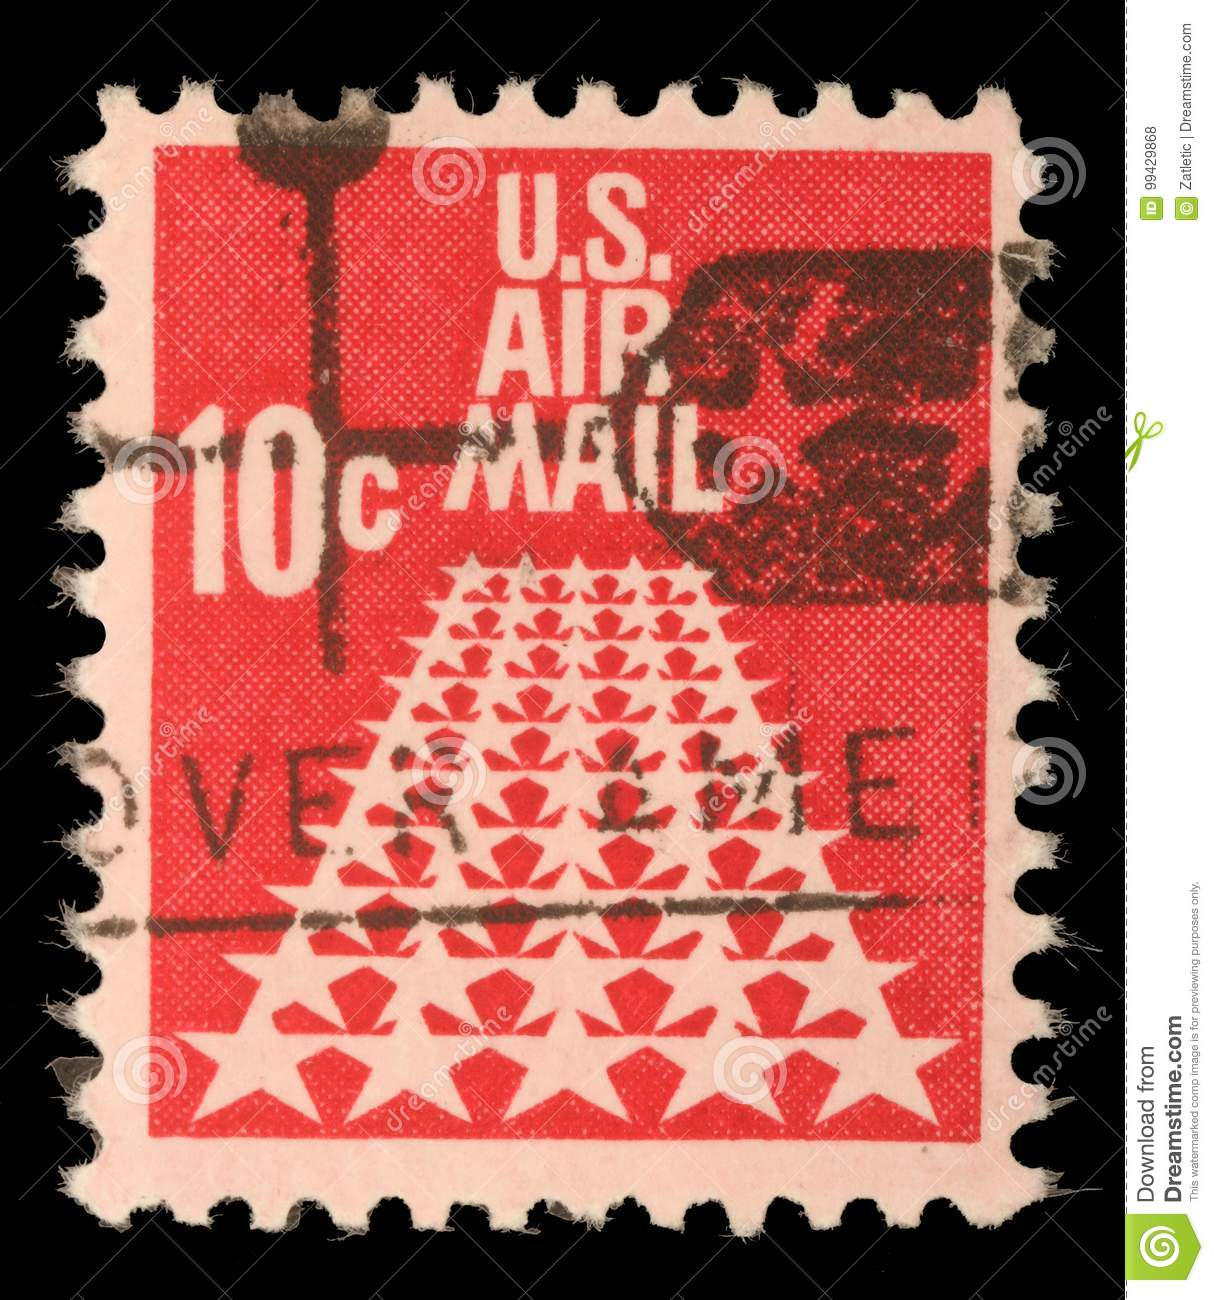 United States Postage Stamp In The Value Of 10c Used For Overseas Air Mail Deliveries Showing Symbols And Print US Circa 1968